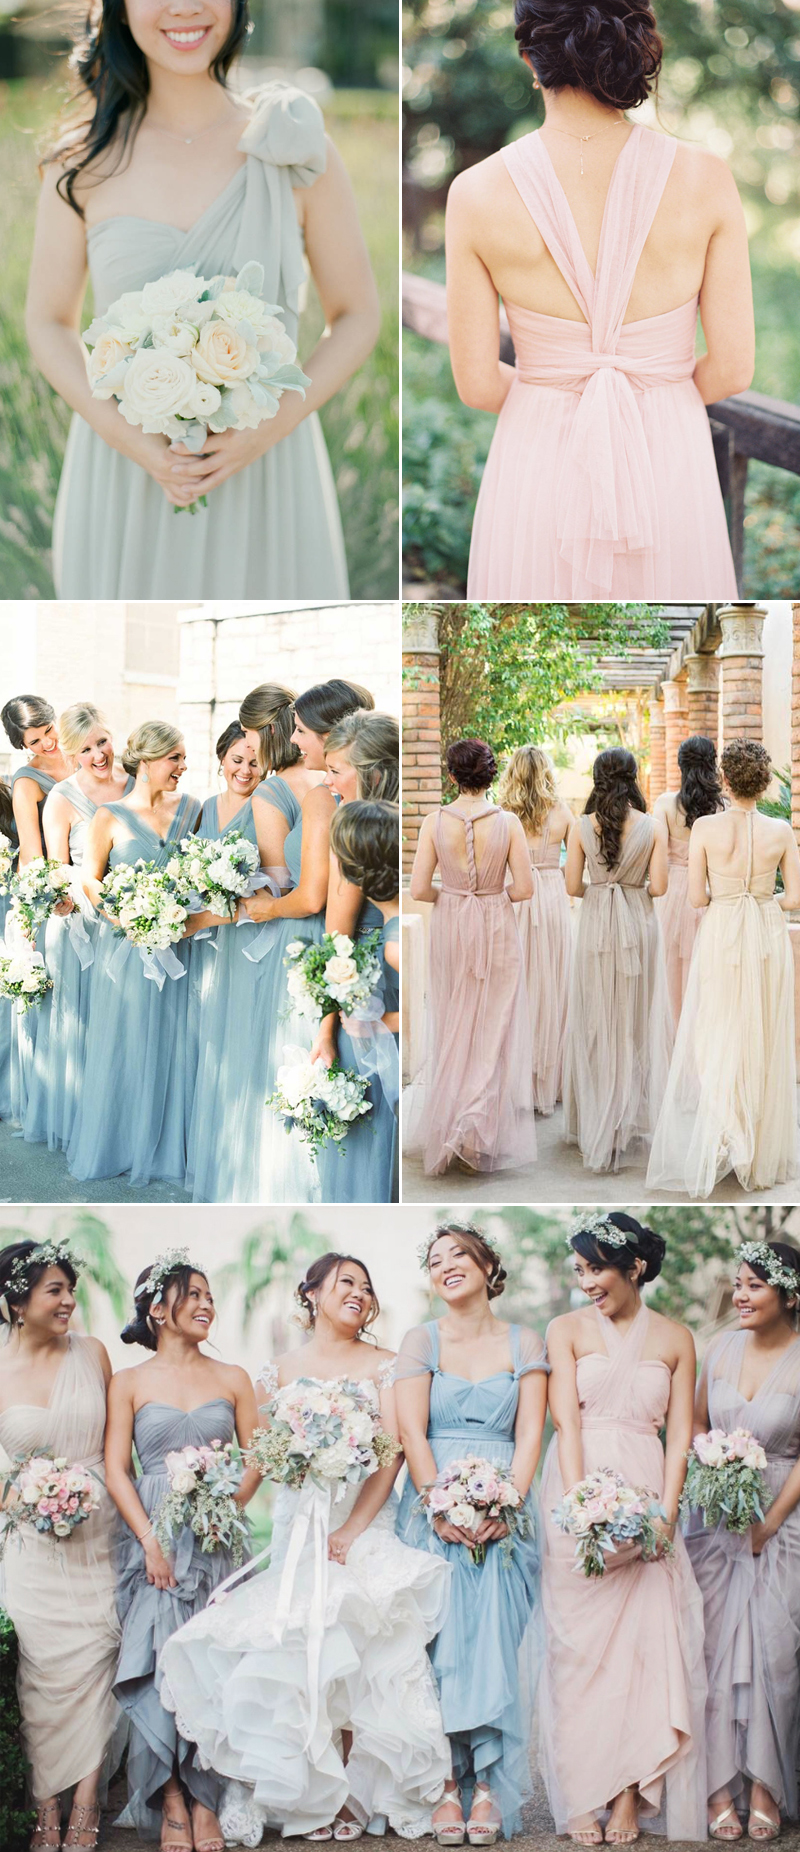 01-Best Bridesmaid Dresses (Jenny Yoo)